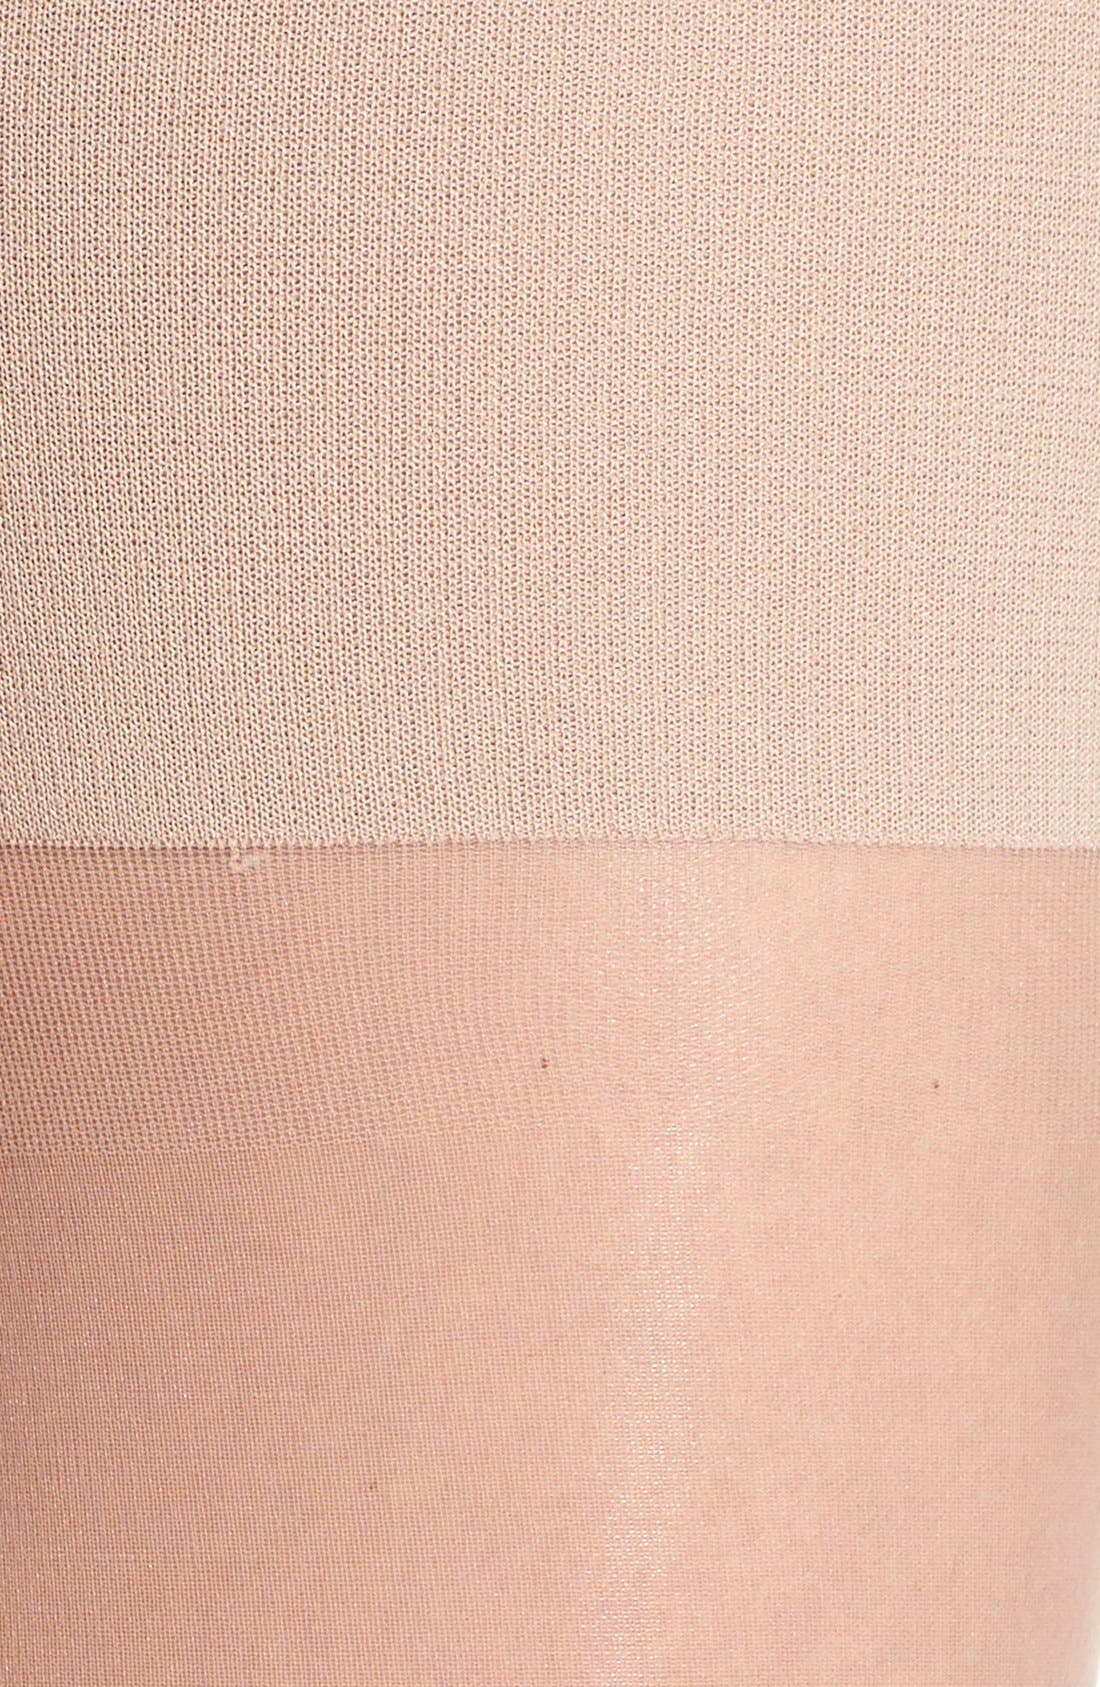 Luxe High Waist Shaping Pantyhose,                             Alternate thumbnail 3, color,                             250